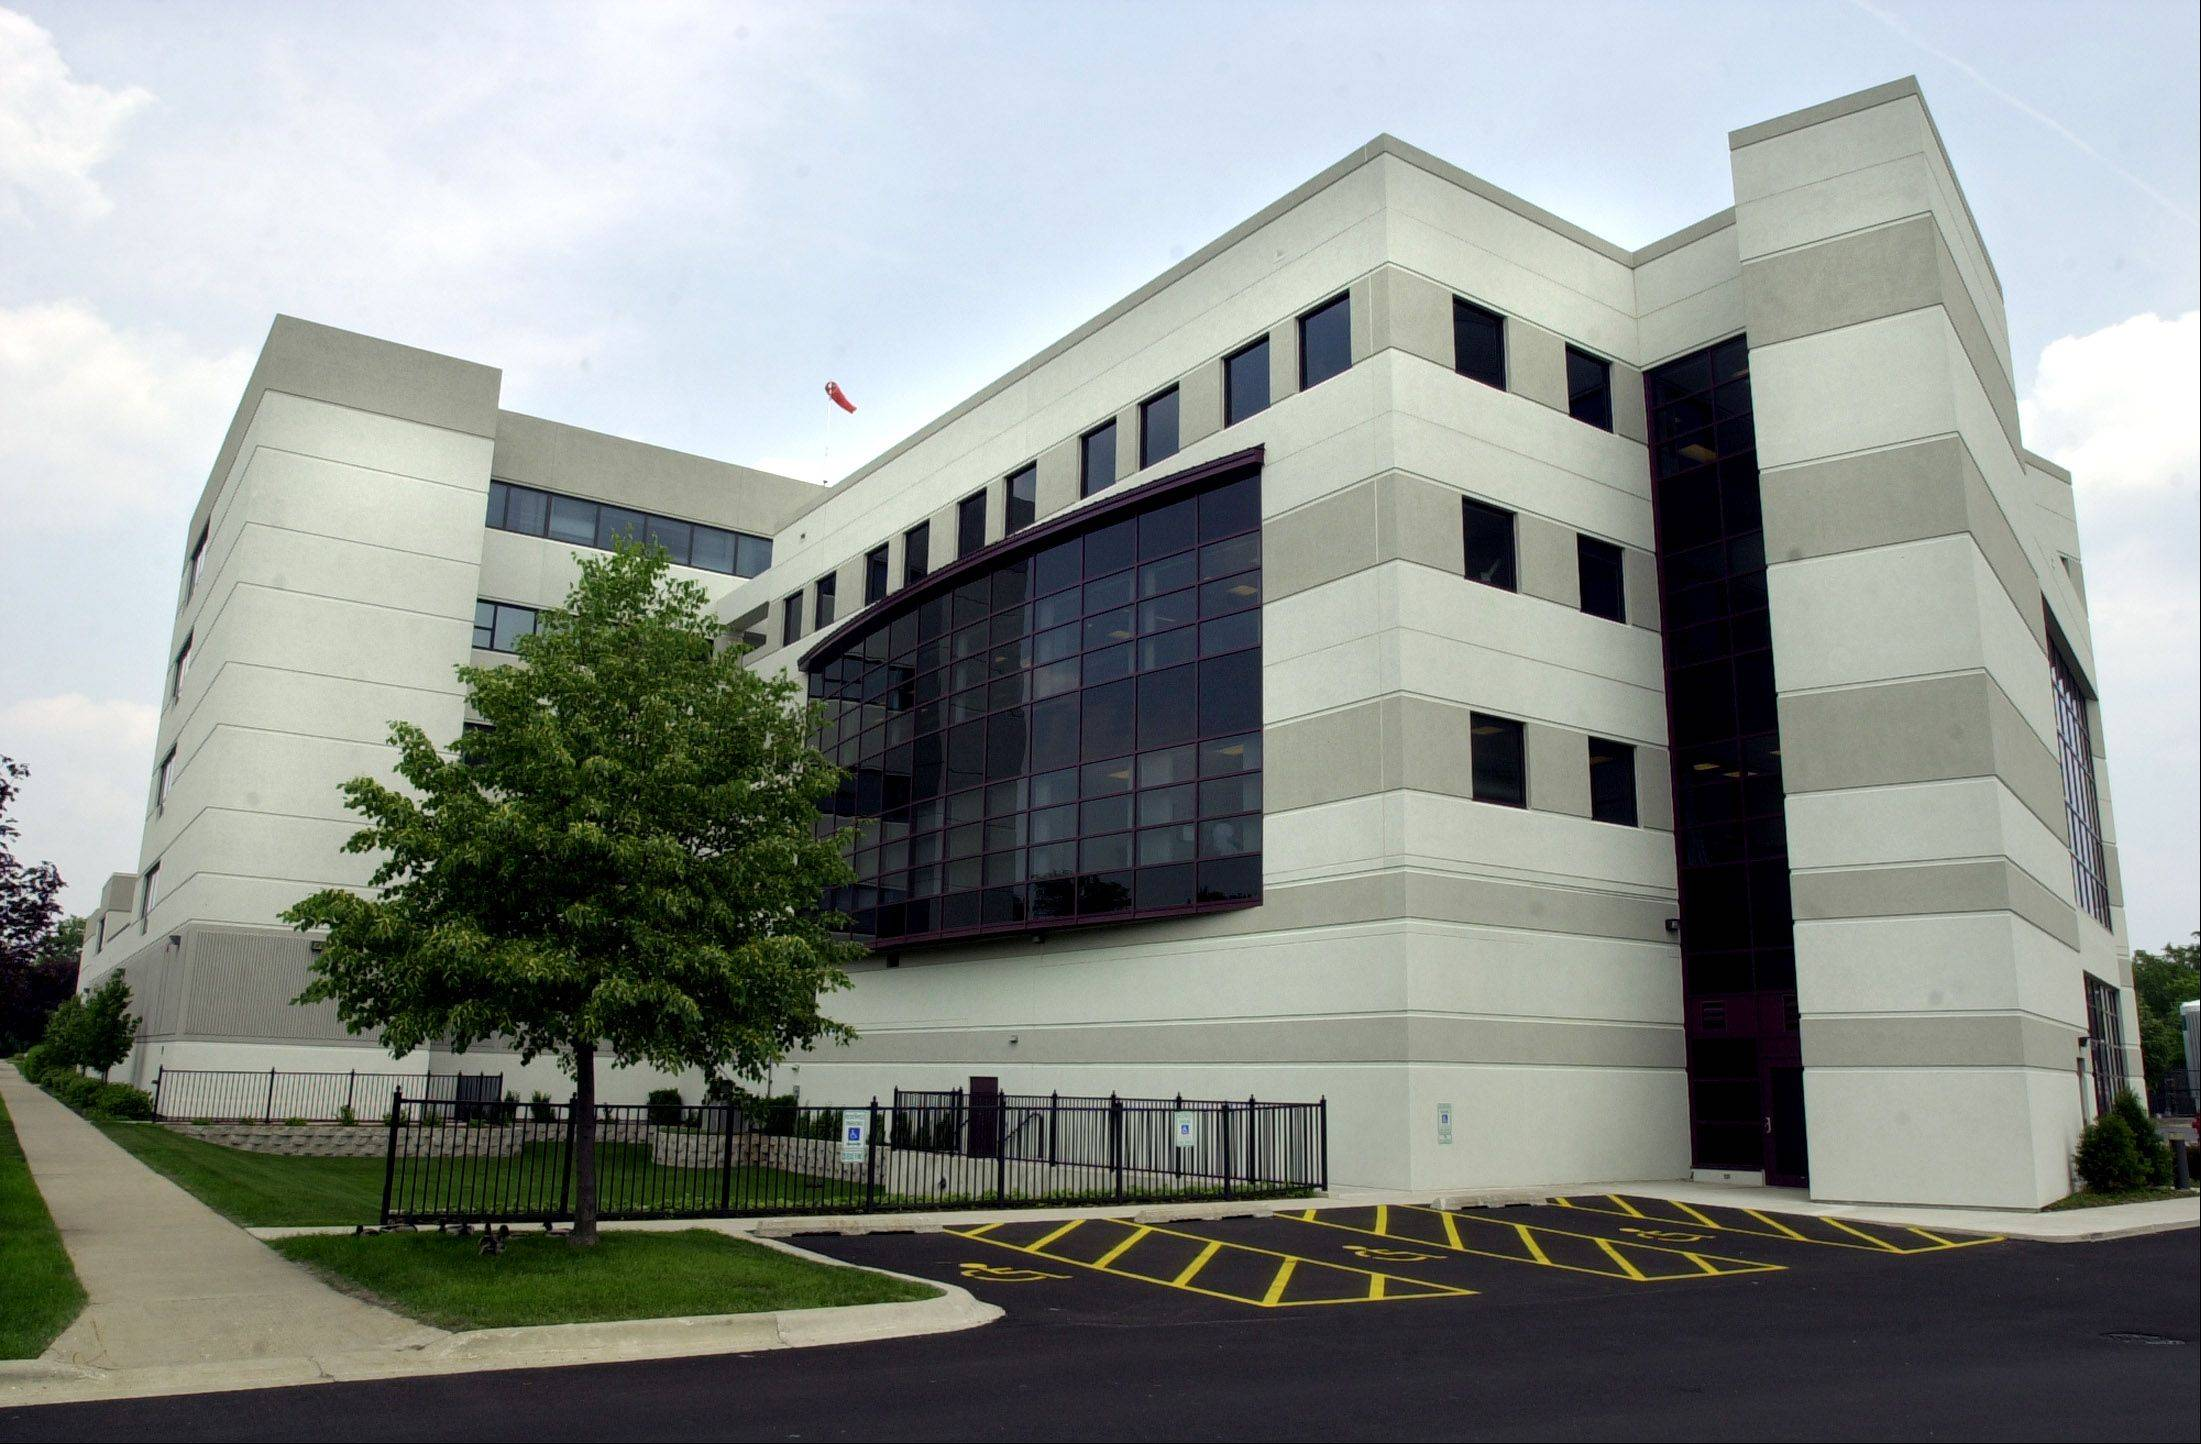 Cancer Treatment Centers of America's Midwest Regional Medical Center in Zion.